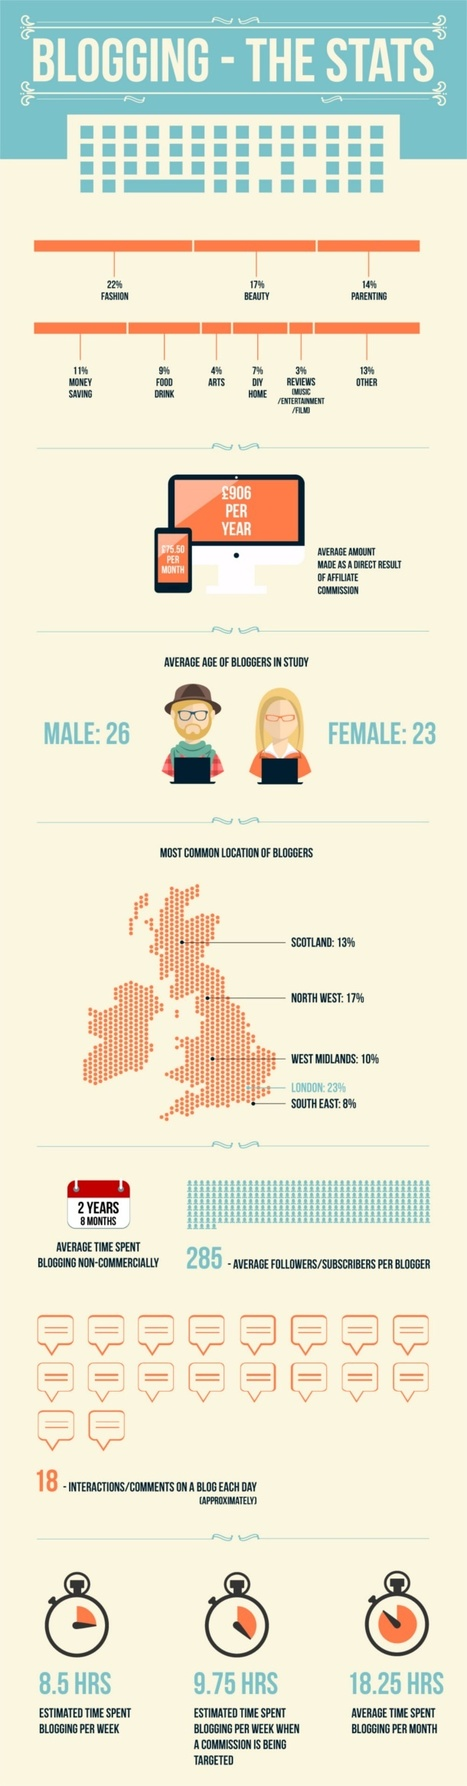 Blogging: The stats. #infographic | MarketingHits | Scoop.it